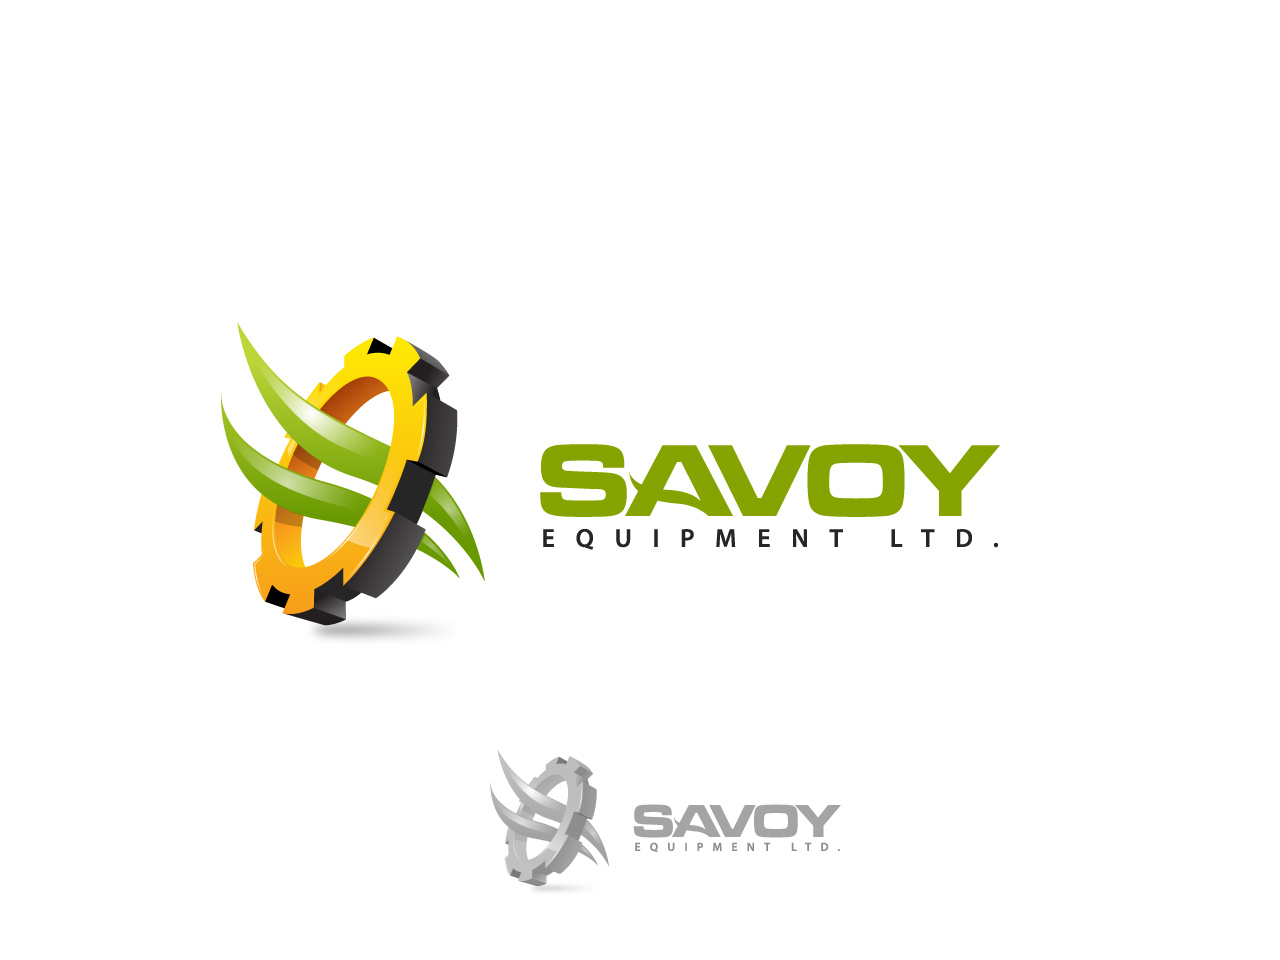 Logo Design by jpbituin - Entry No. 80 in the Logo Design Contest Inspiring Logo Design for Savoy Equipment Ltd..